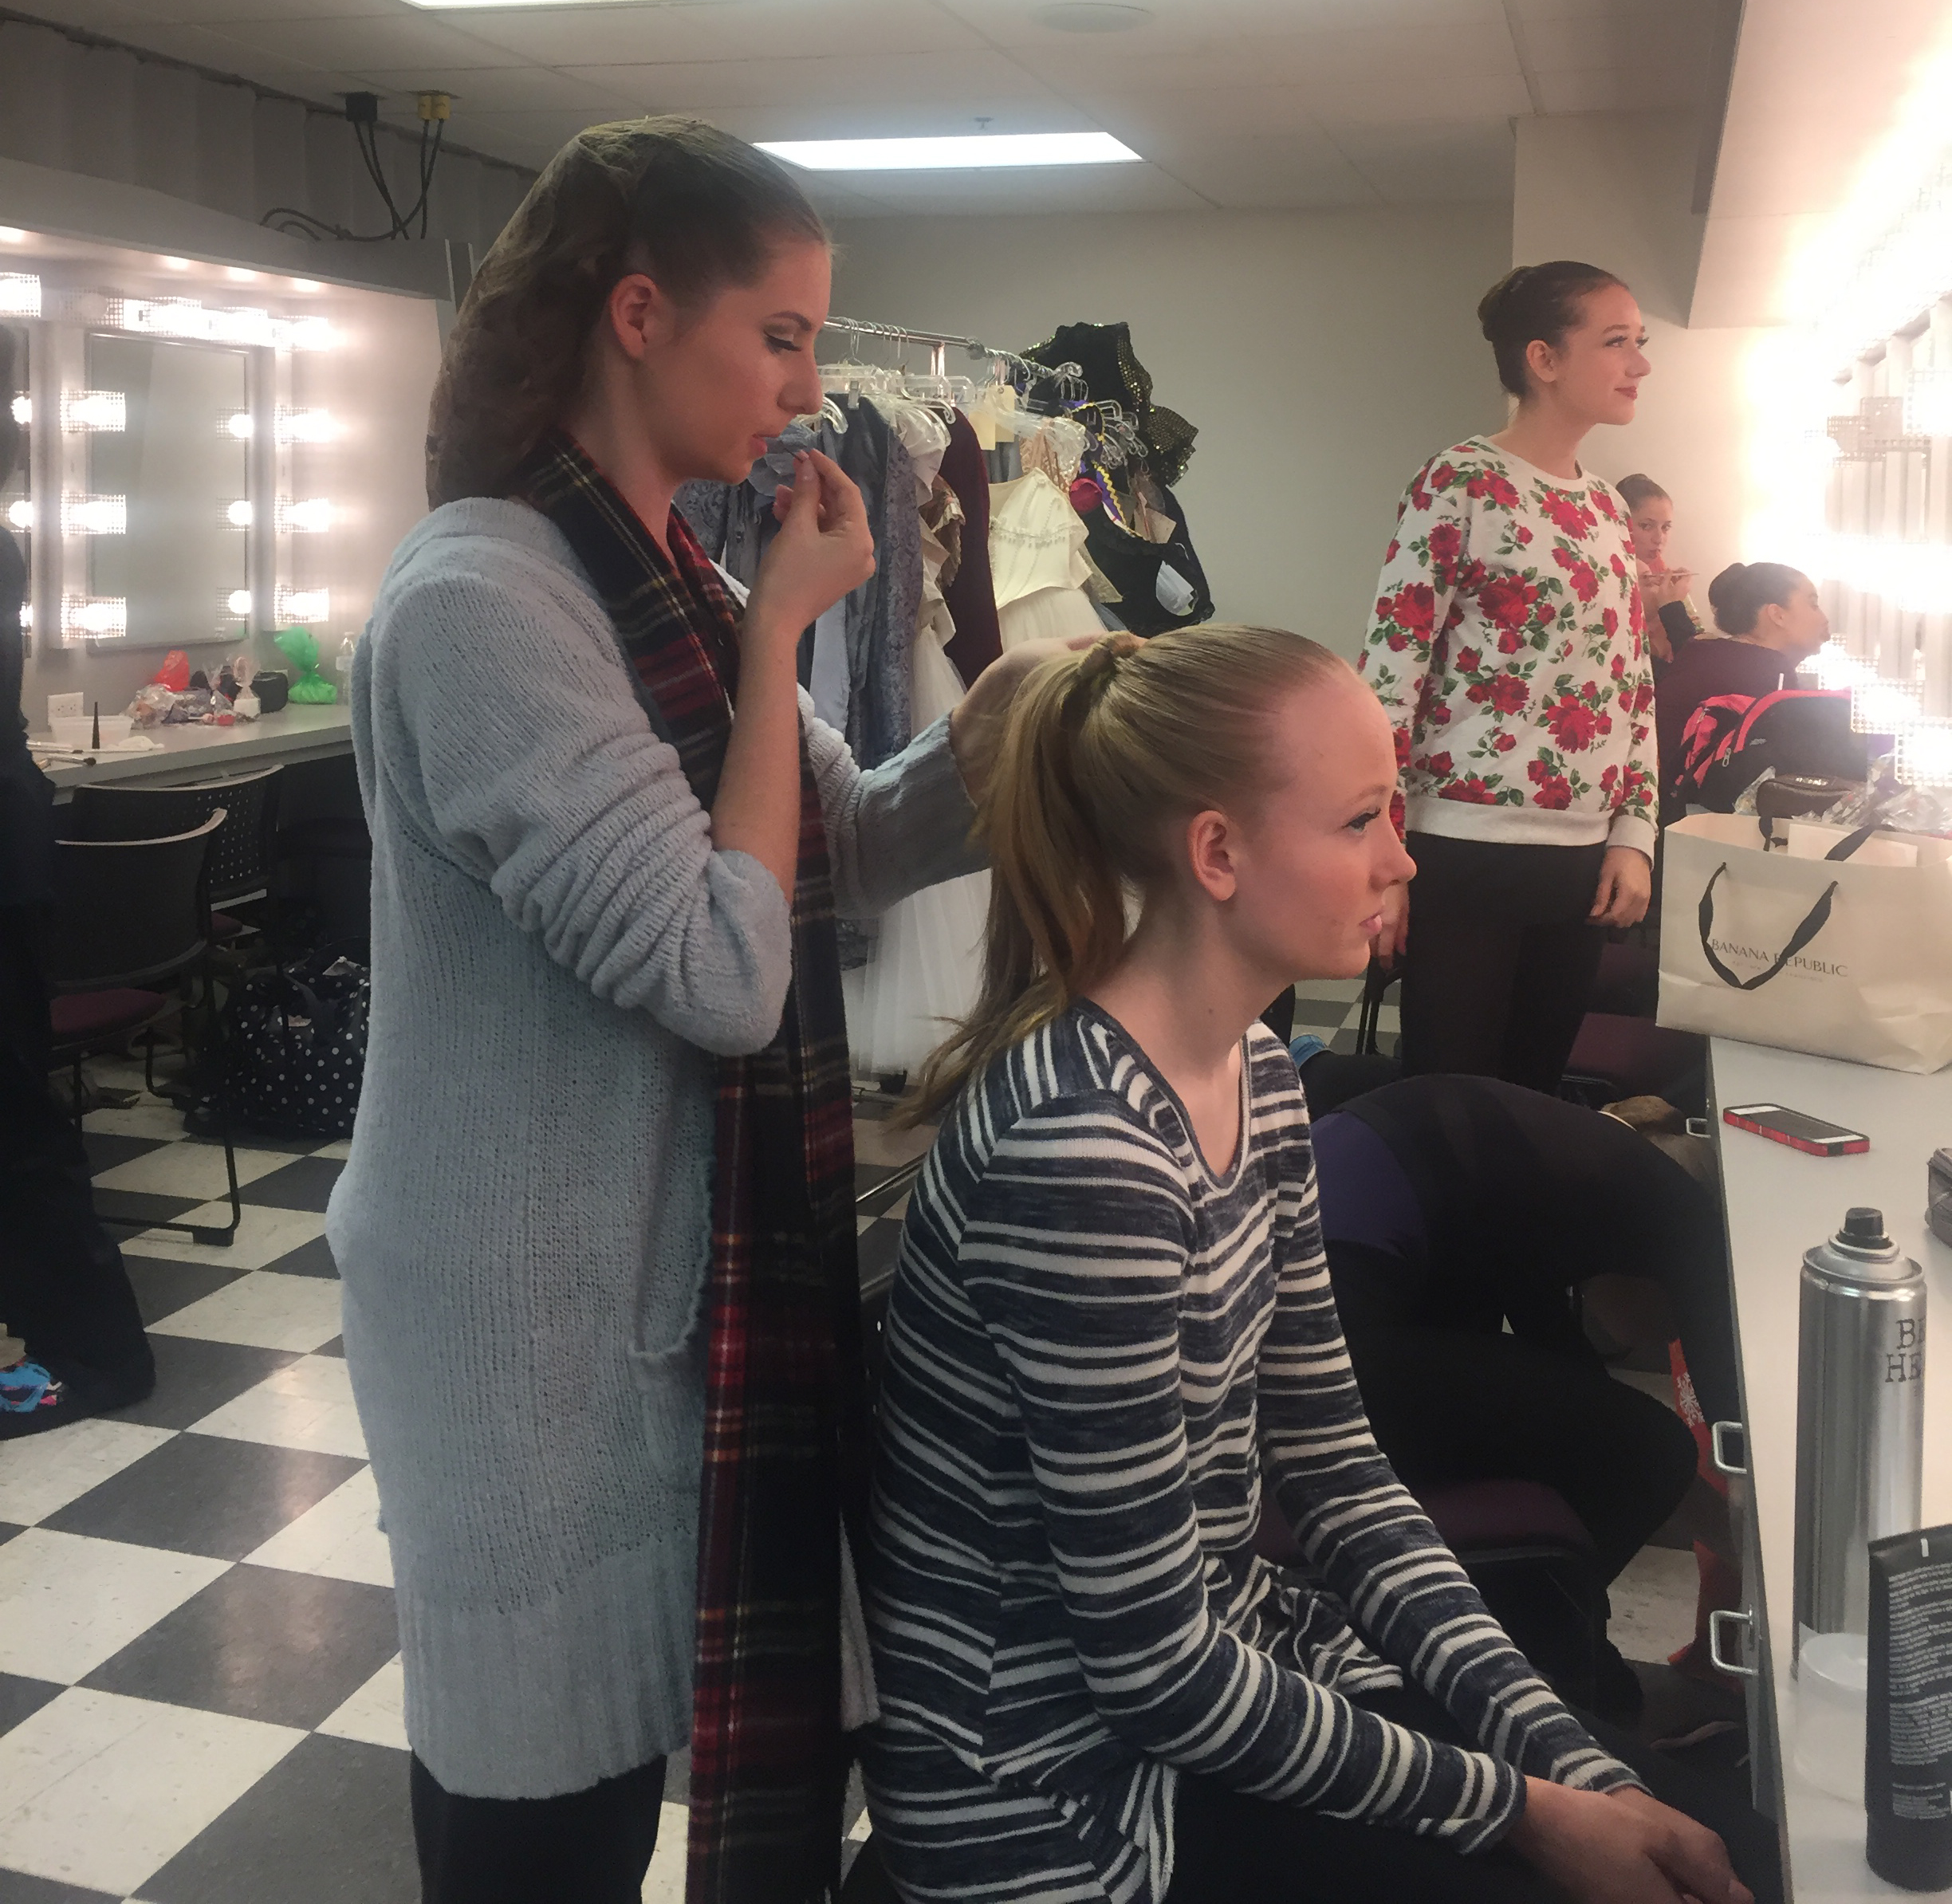 Like mother like daughter, Brooke helping her fellow dancers with their pre-show hair & makeup needs.